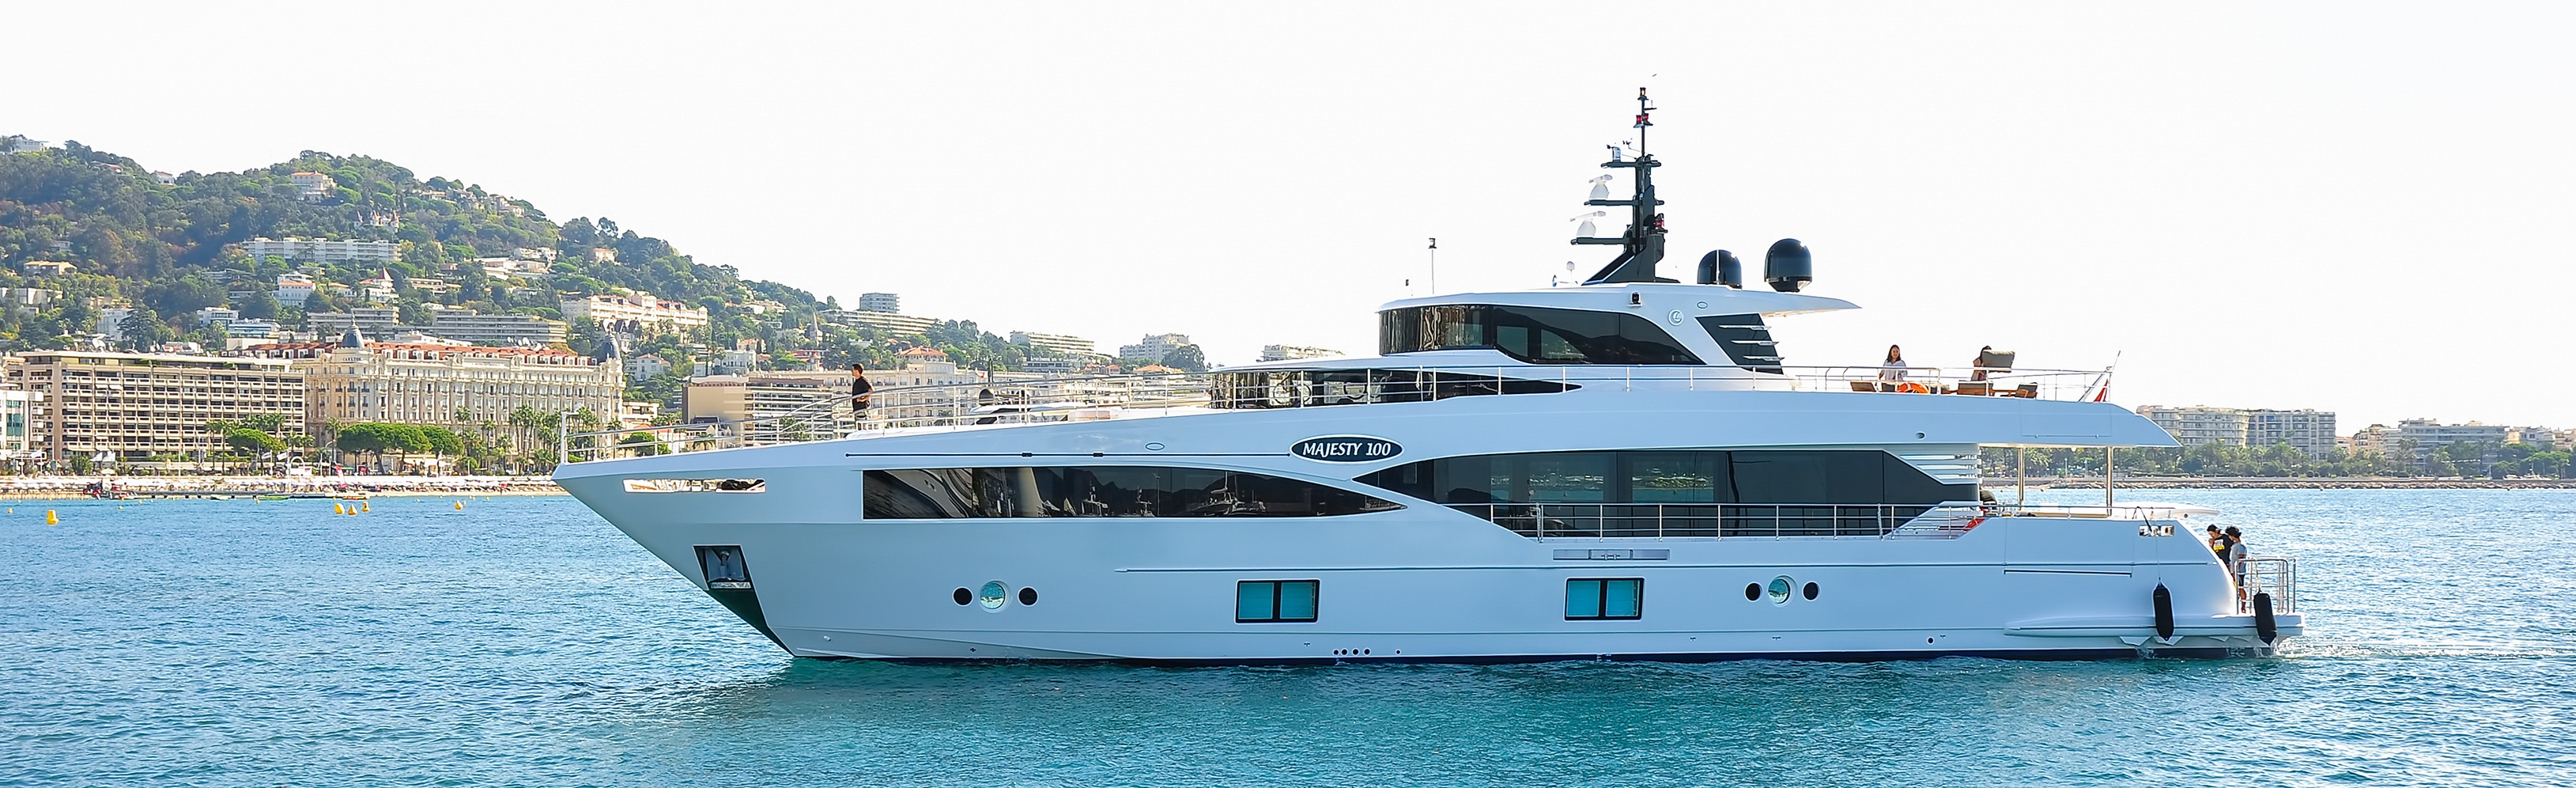 Majesty-100-as-it-enters-Cannes-Yachting-Festival.jpg